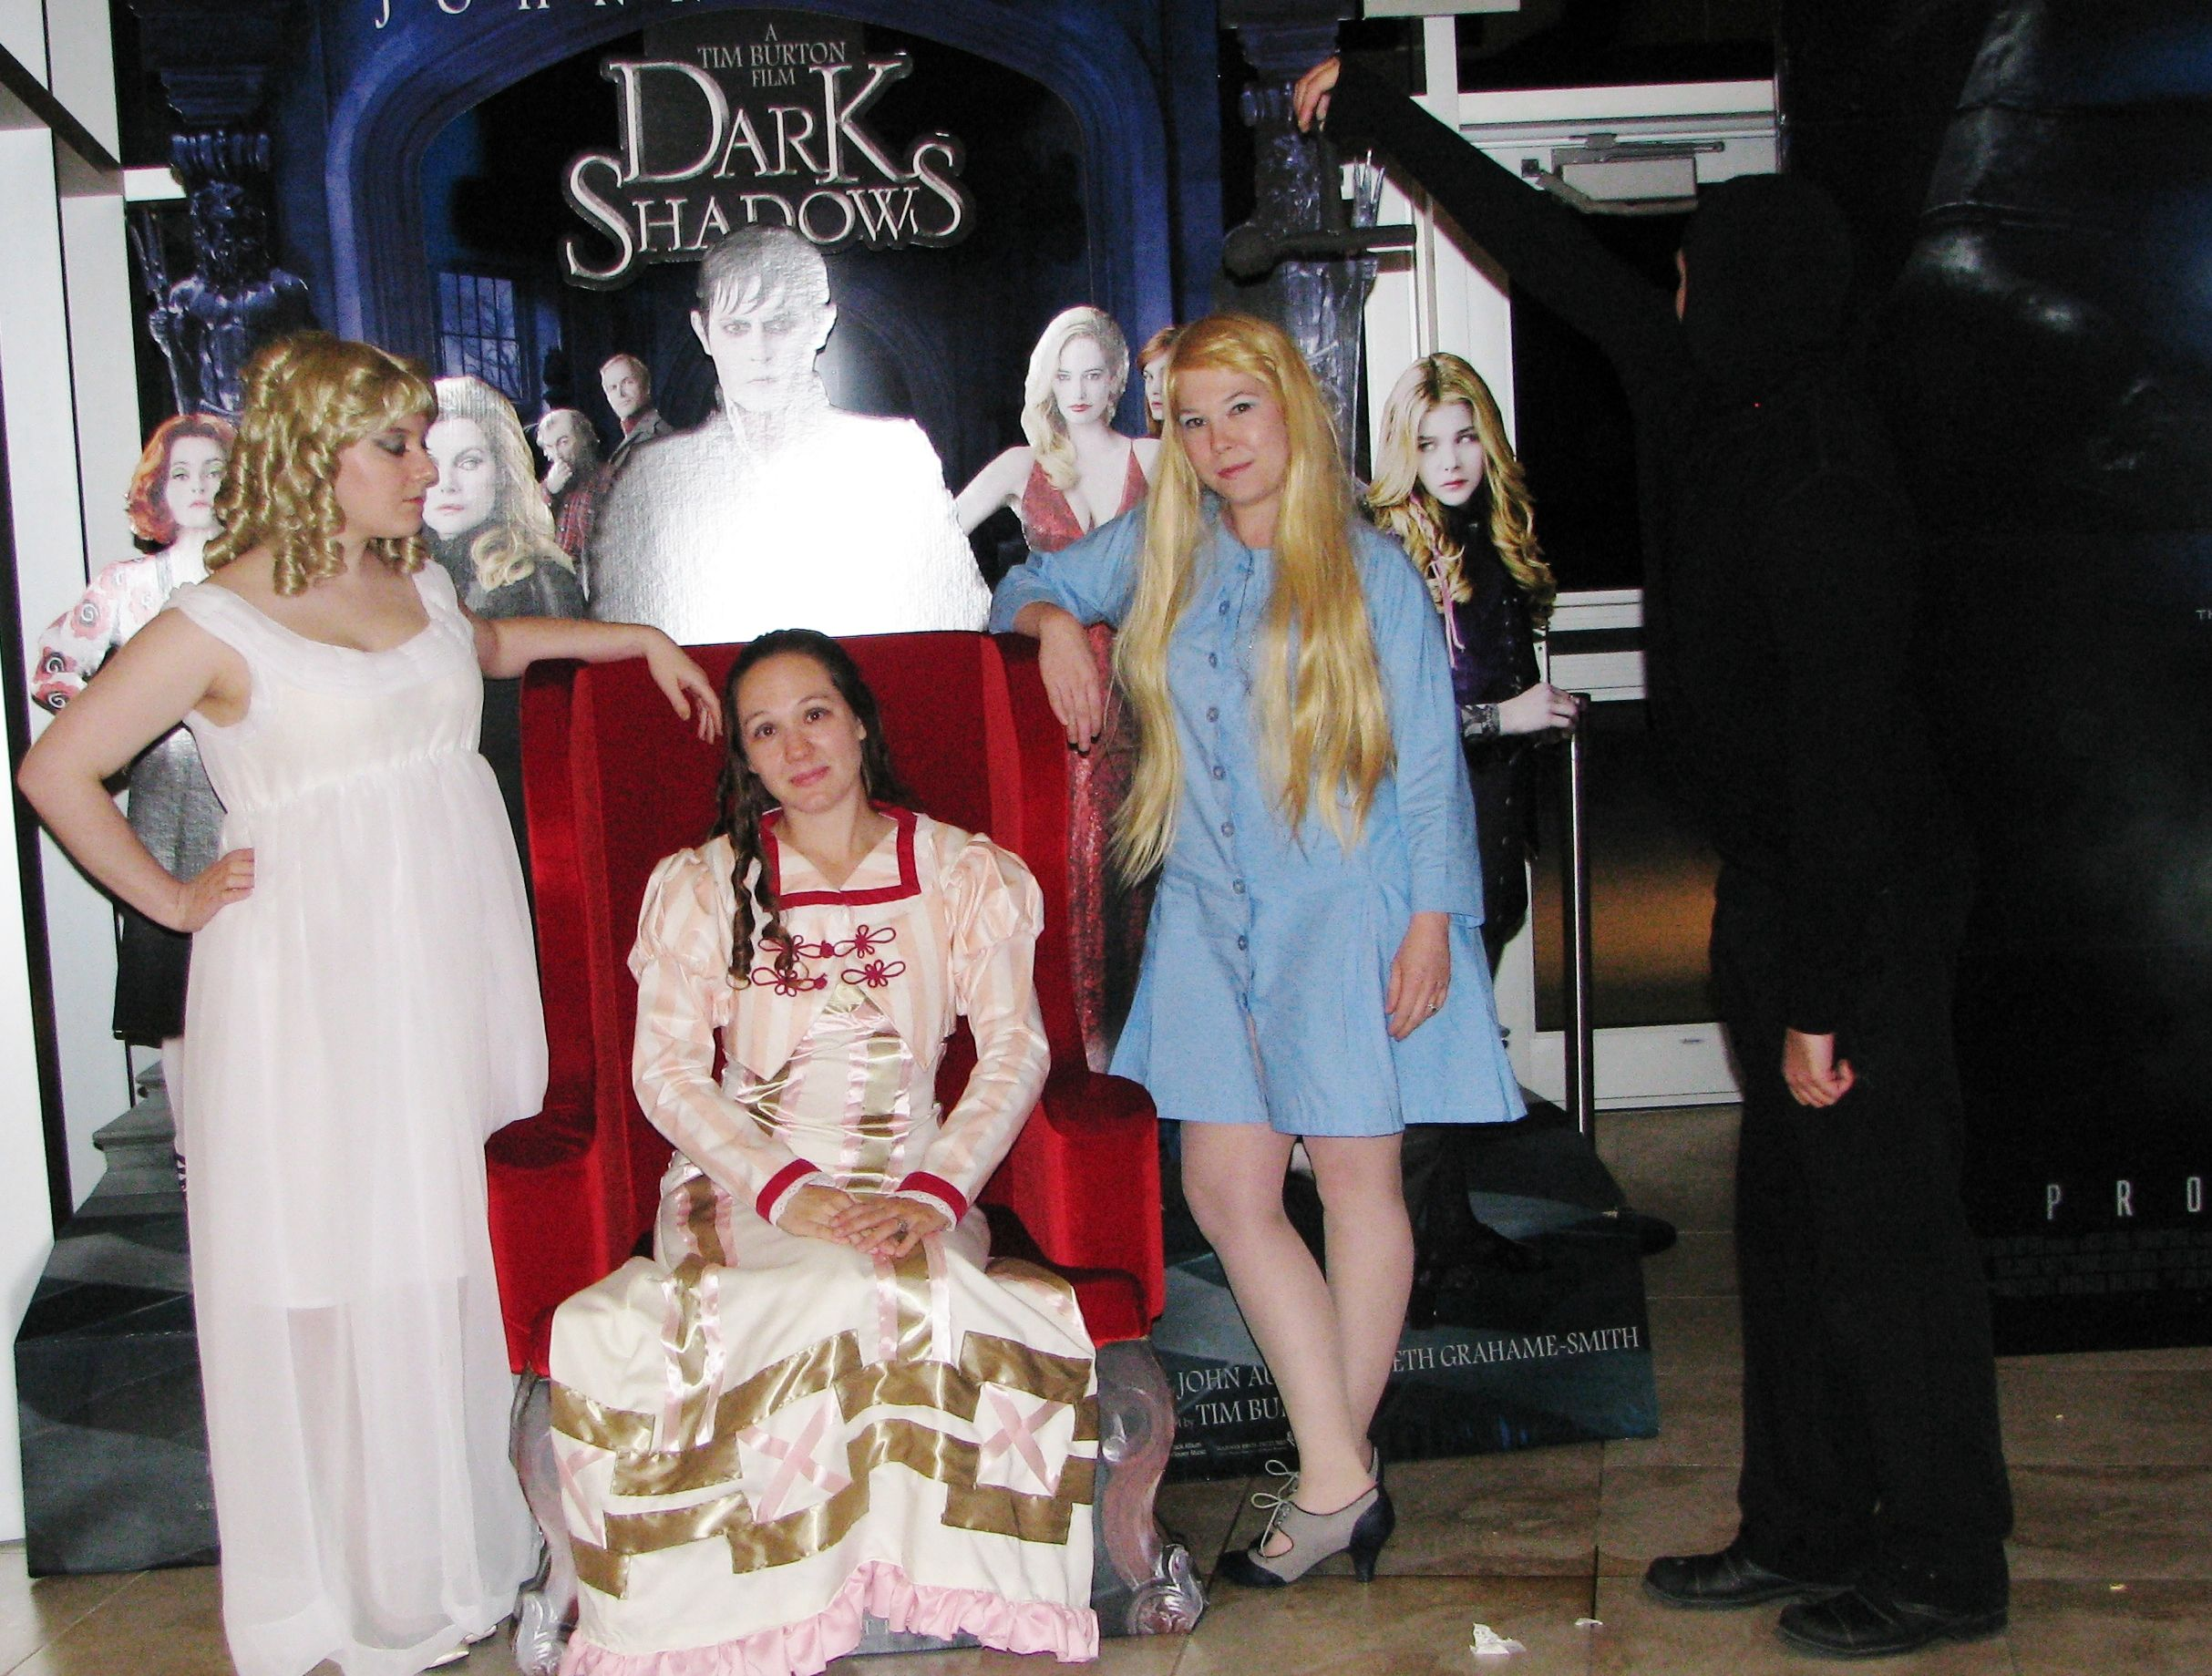 Dark Shadows cosplay with beth and alyce!!